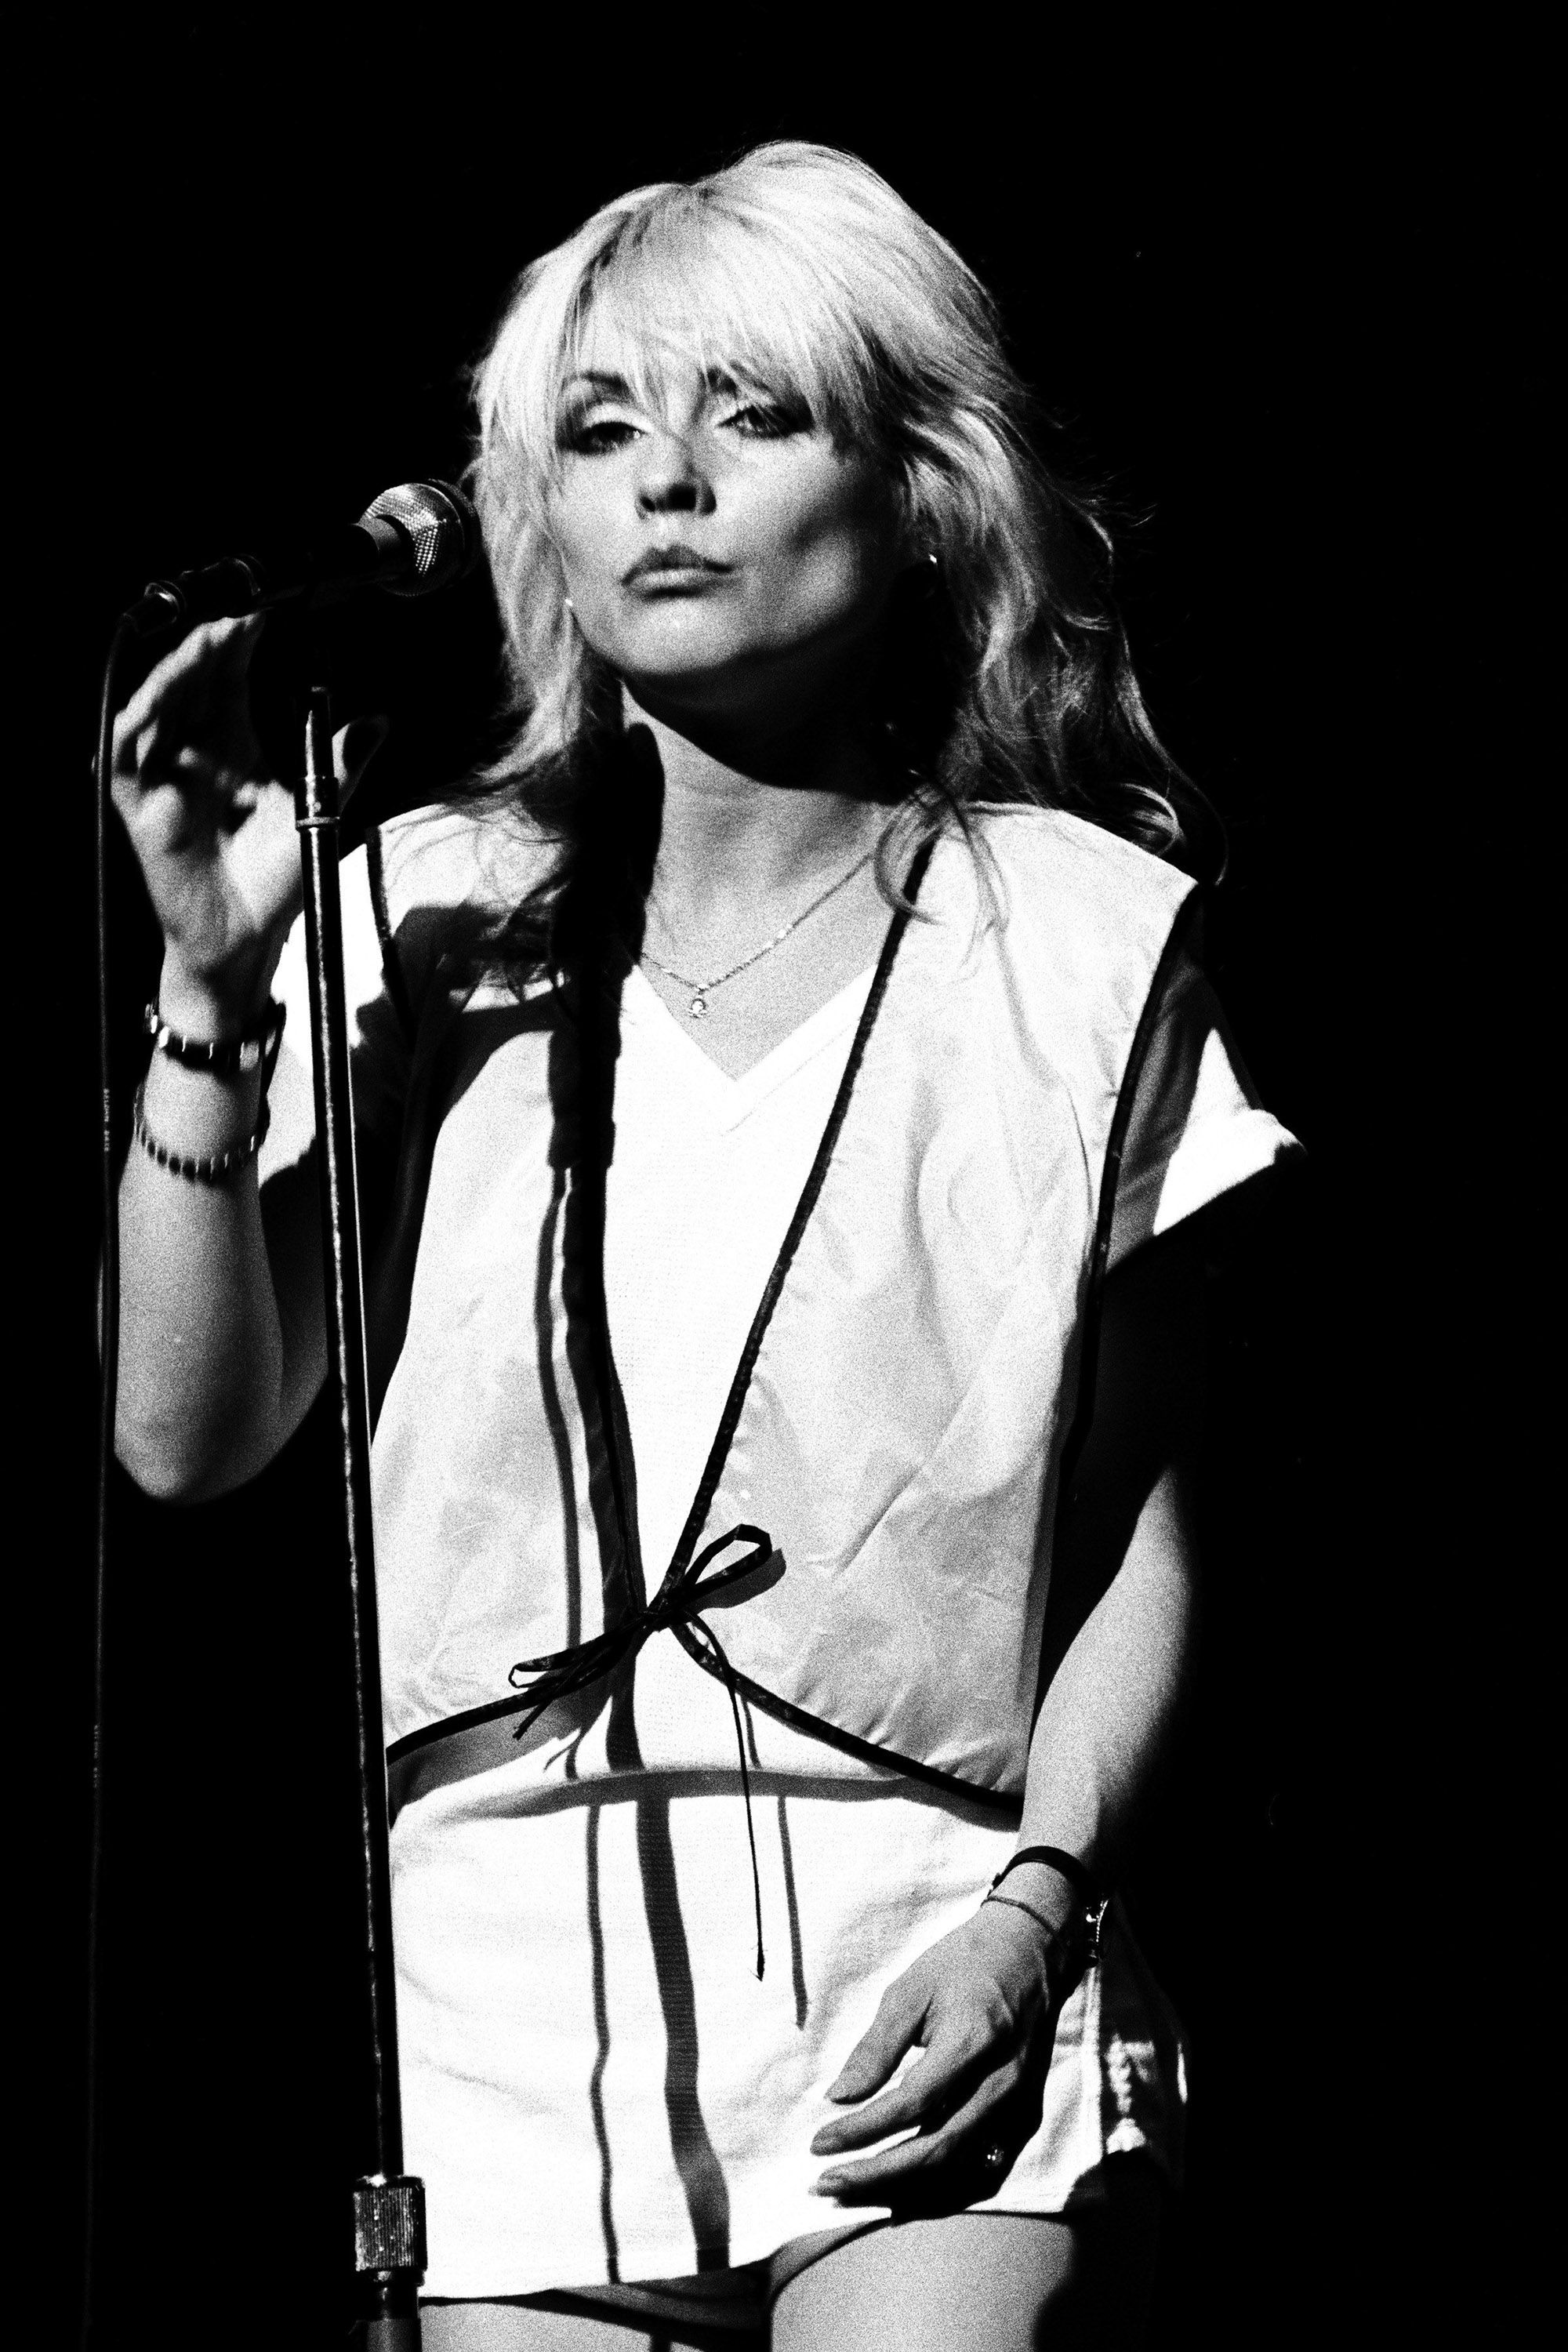 SAN FRANCISCO - 1978:  Debbie Harry of Blondie performs live at The Winterland Ballroom in 1978 in San Francisco, California. (Photo by Richard McCaffrey/Michael Ochs  Archive/Getty Images)